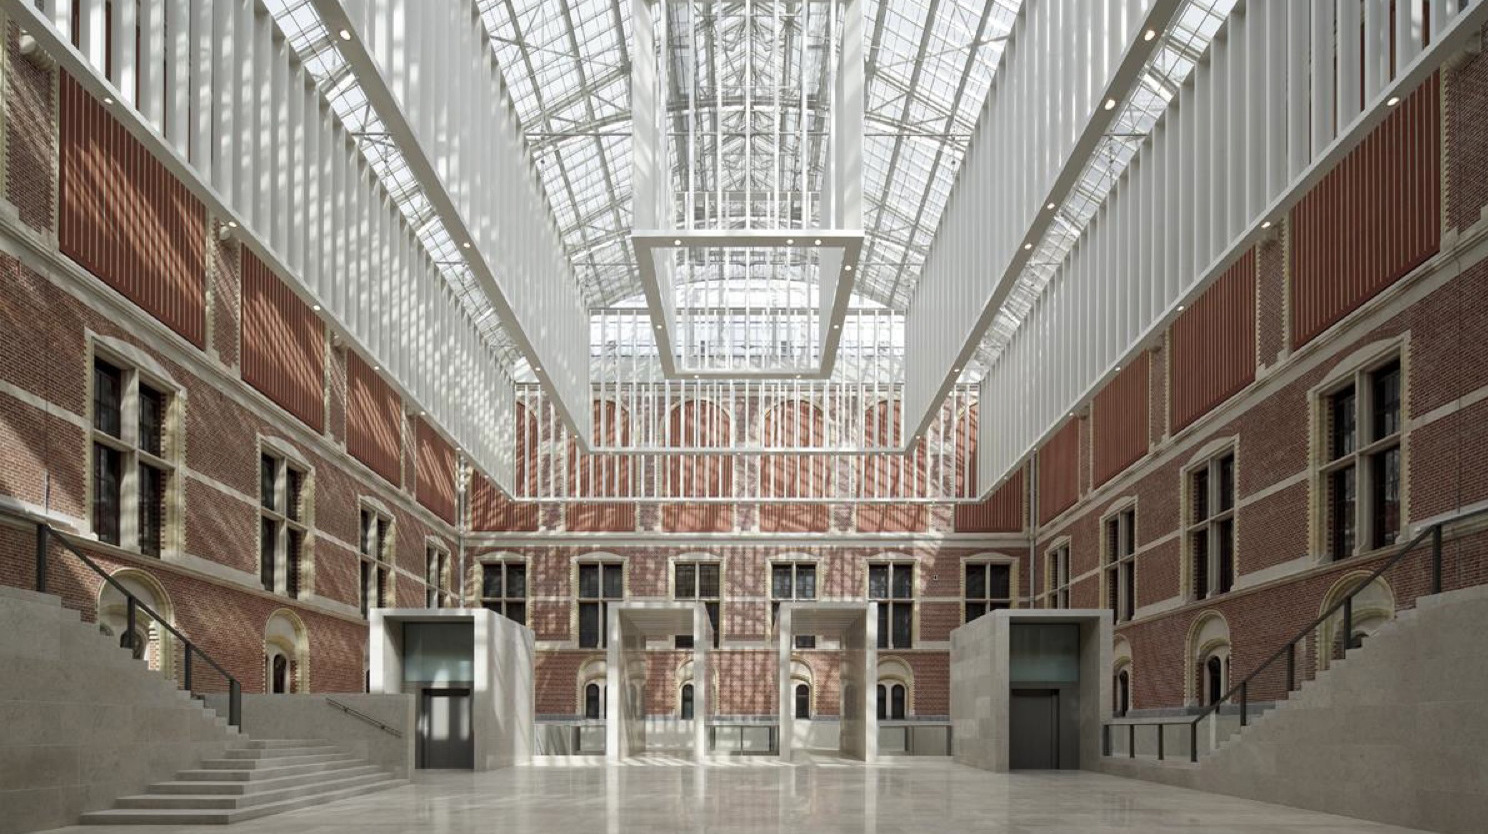 Visit the all-new Rijksmuseum